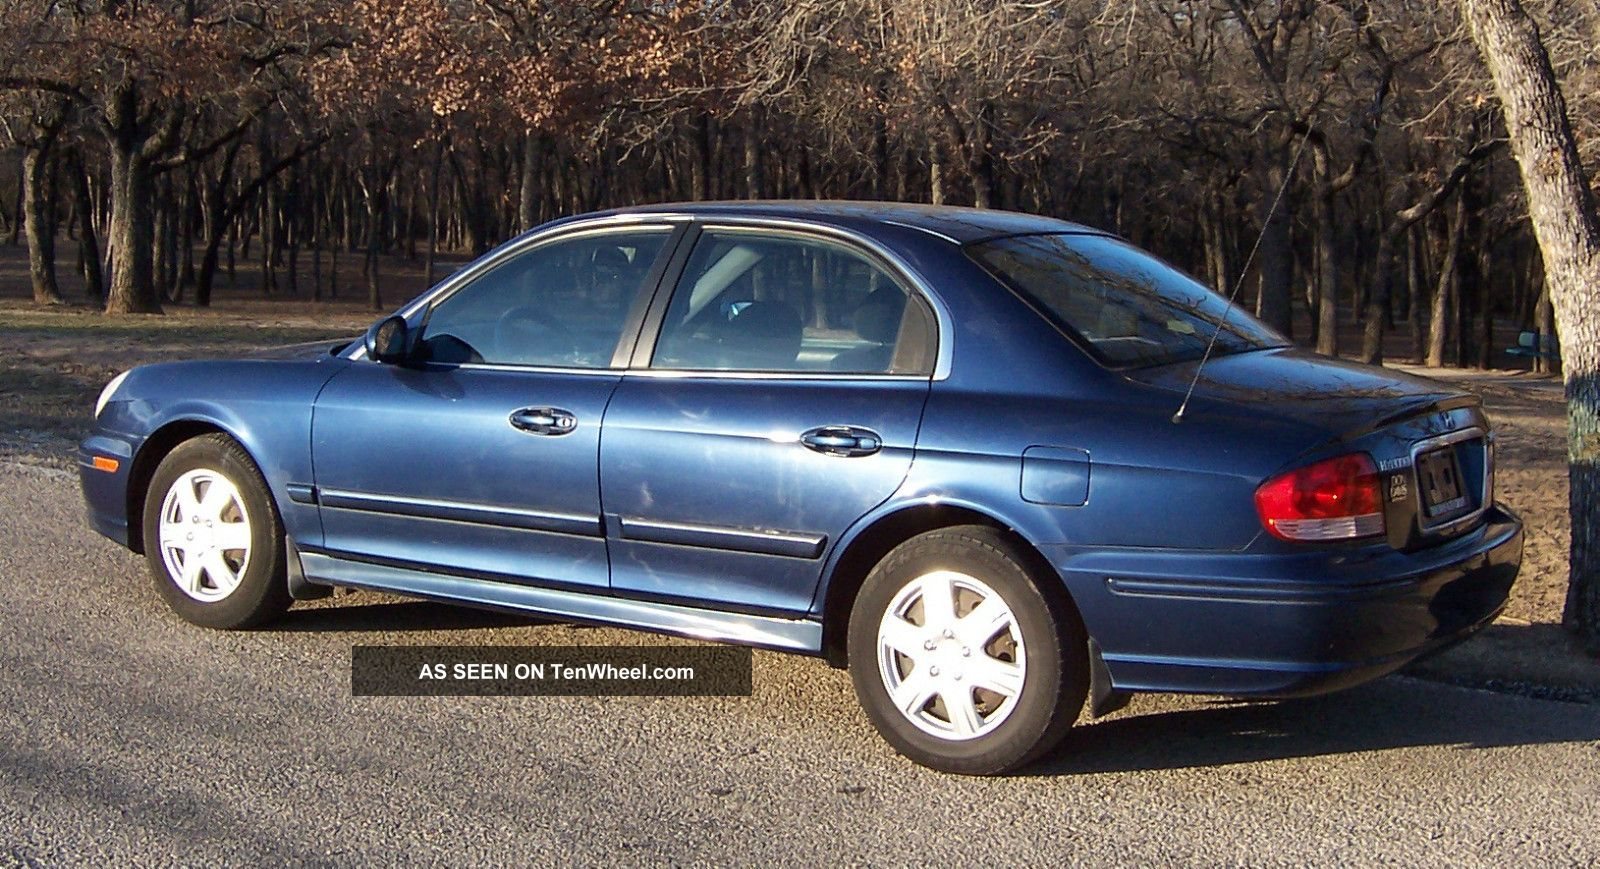 2002 hyundai sonata v pictures information and specs auto database com 2002 hyundai sonata v pictures